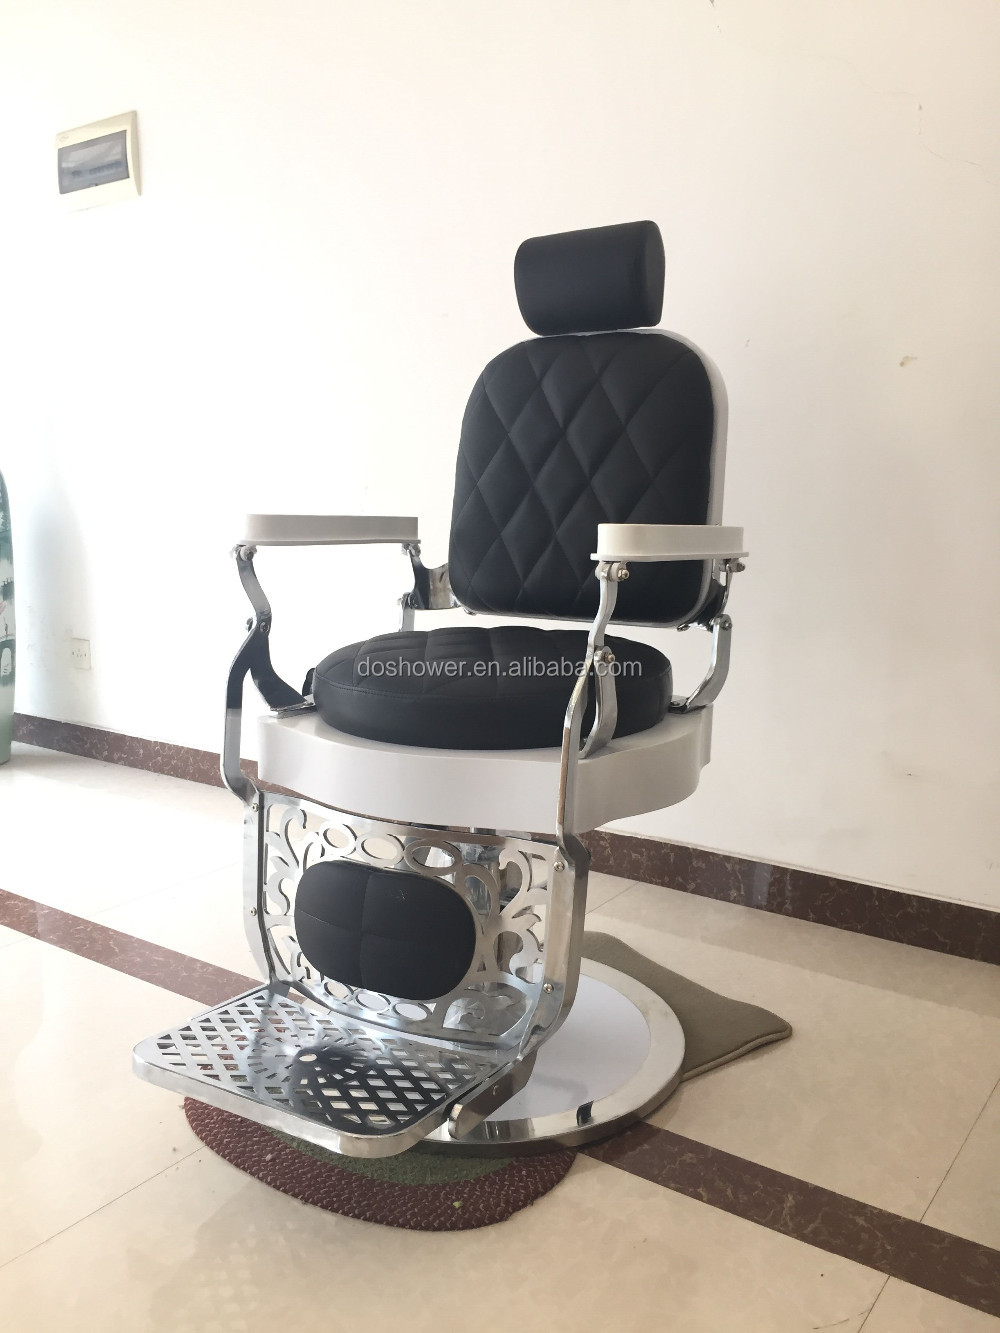 leather executive chair plastic deck chairs doshower hydraulic barber parts - buy parts,modern ...